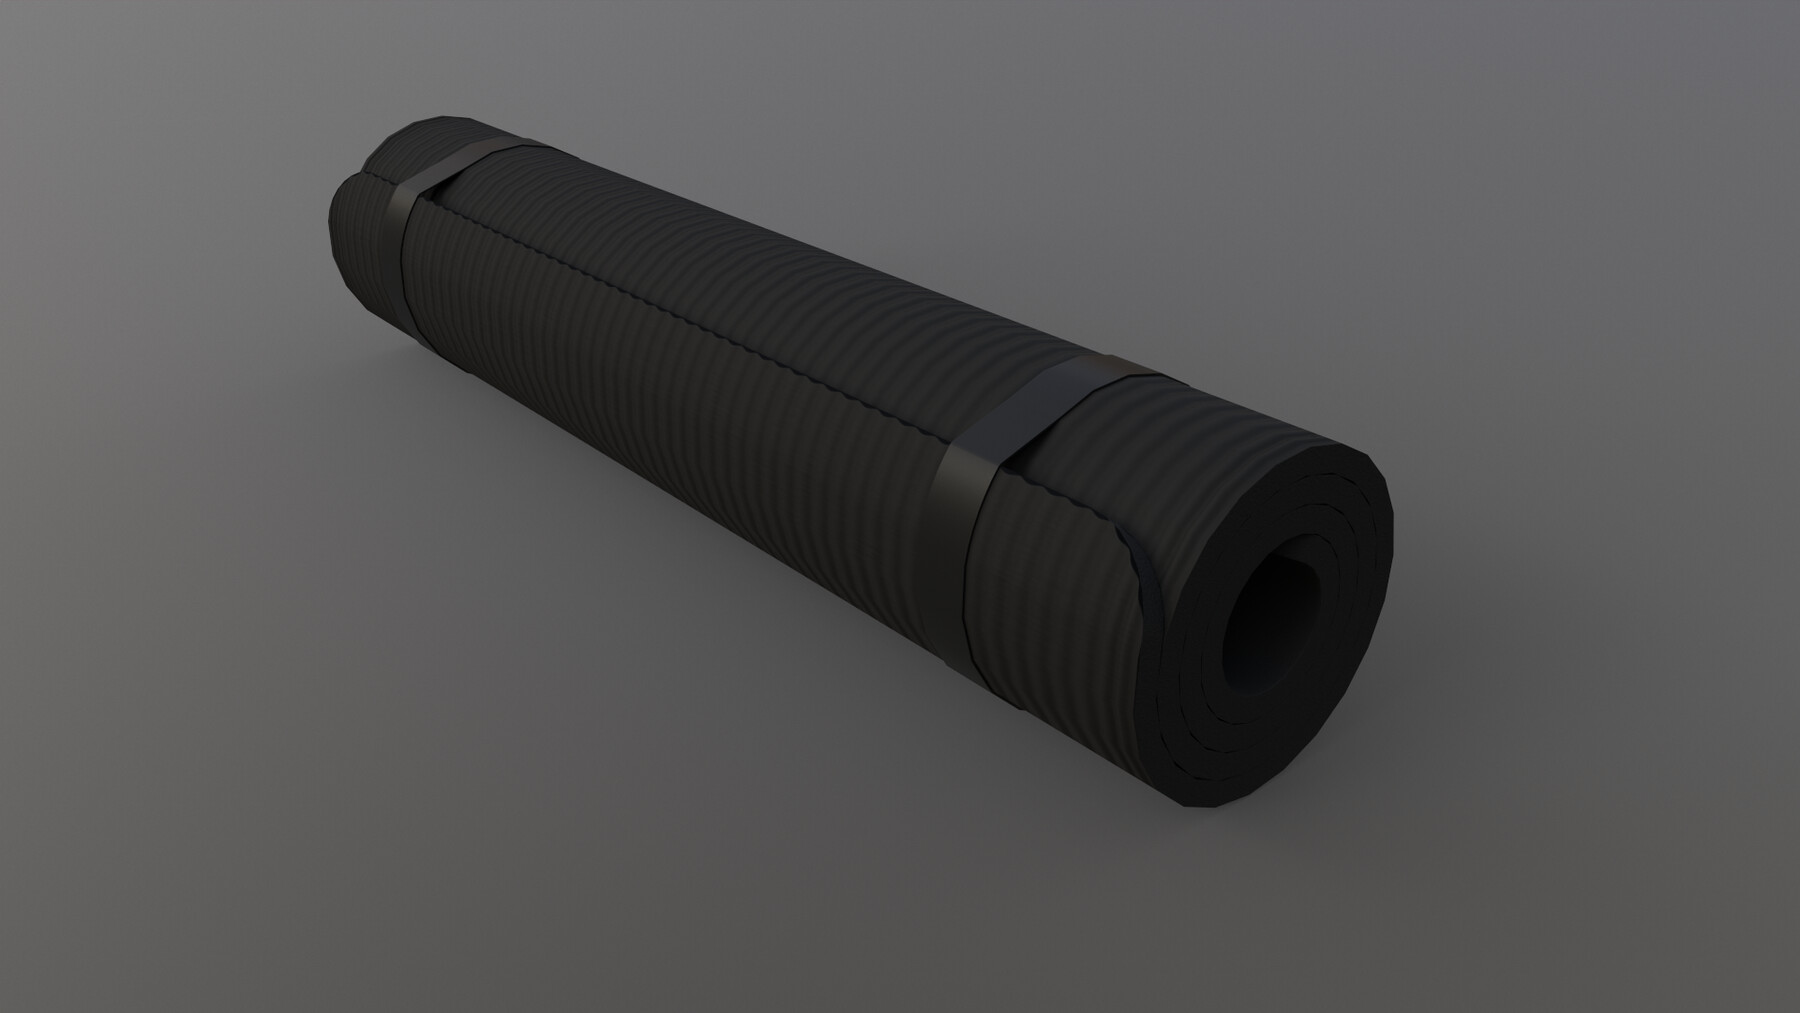 product image 5